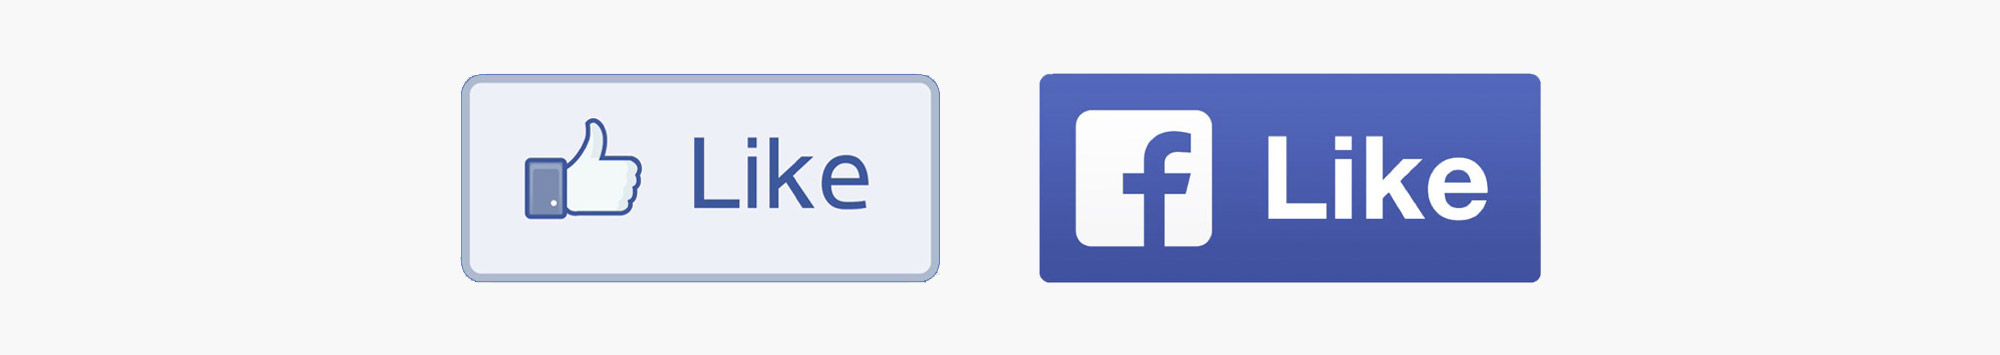 Facebook-Like-Button-redesign